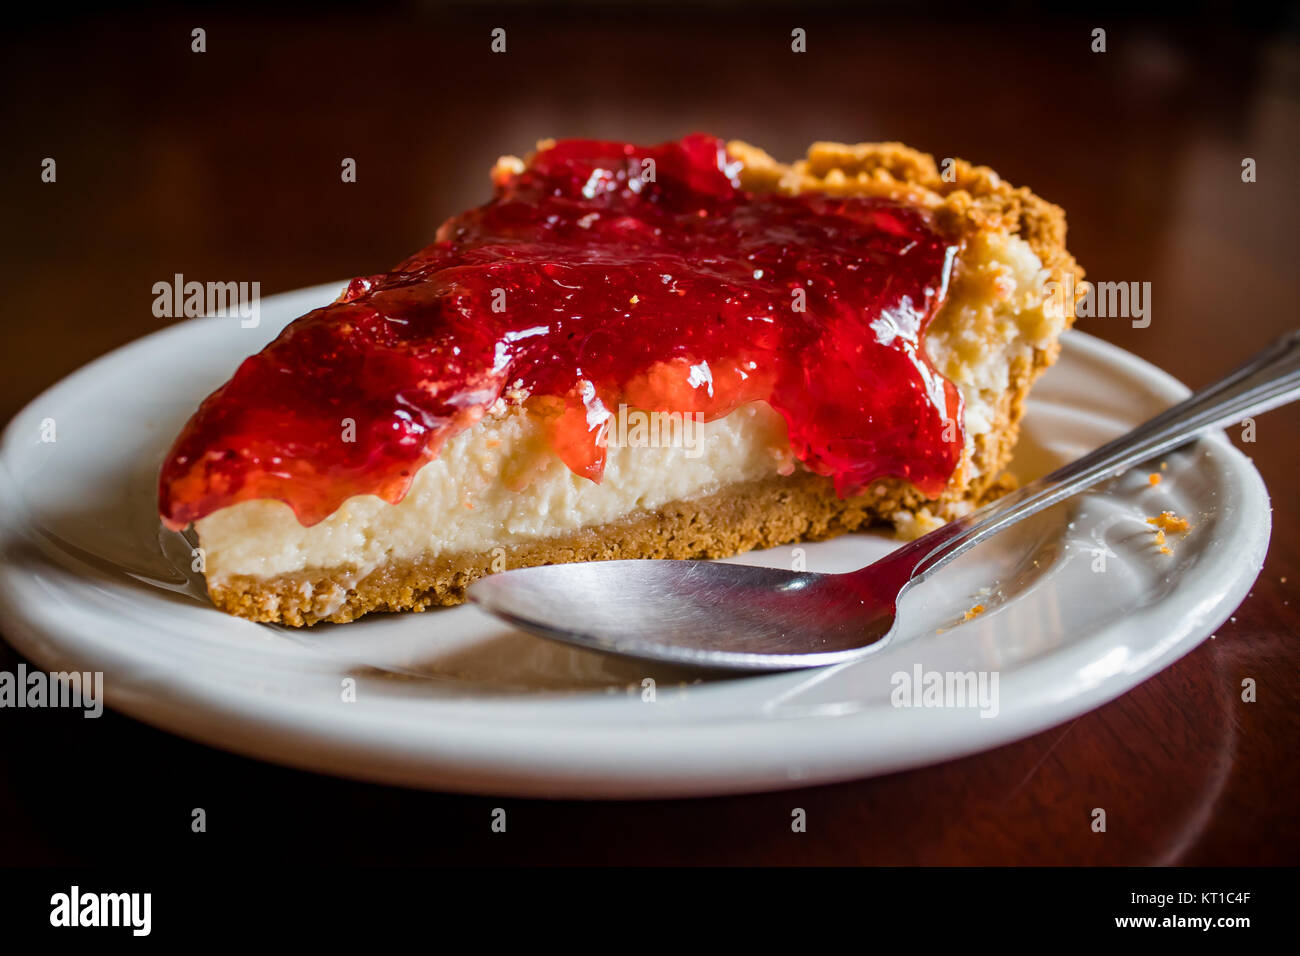 A delicious piece of cheesecake - Stock Image